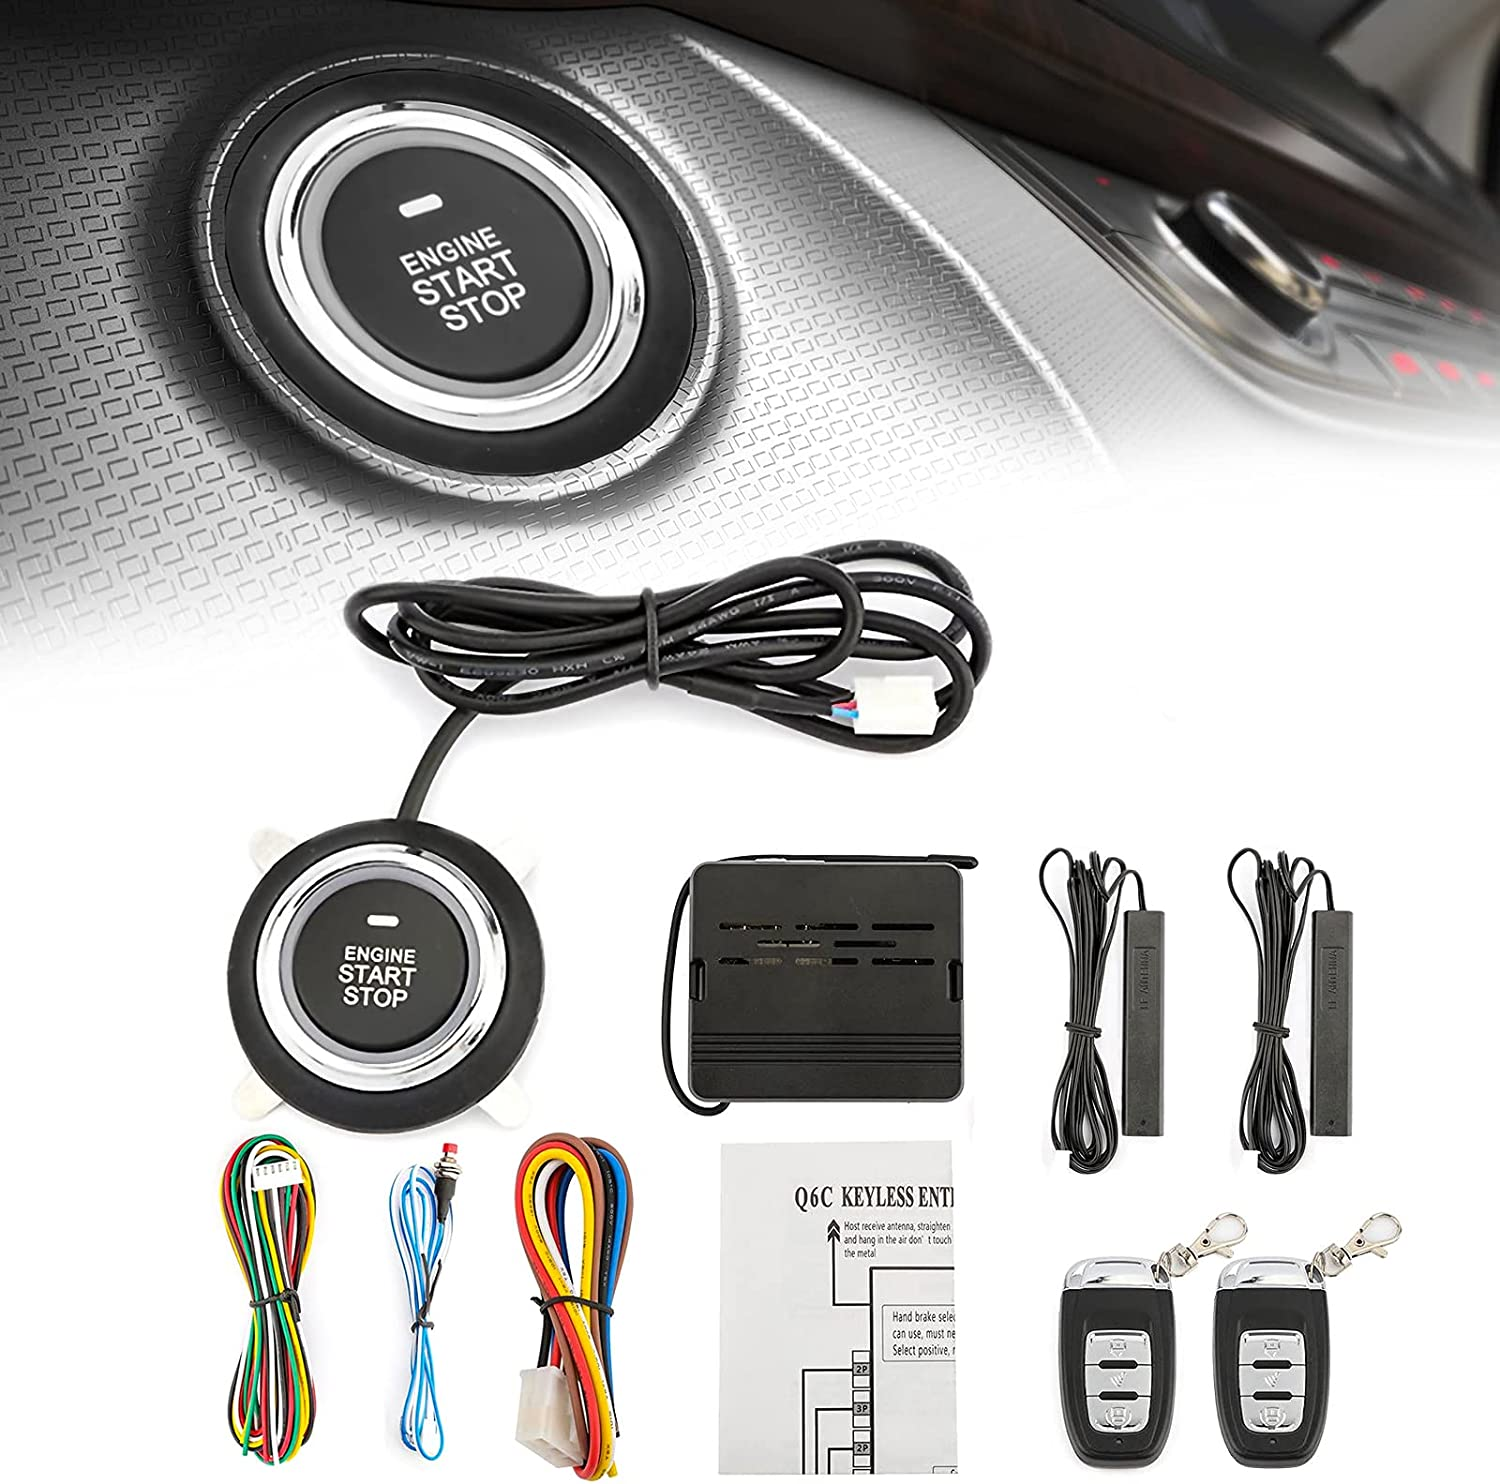 AUXMART Universal Remote Starters Chicago Mall for Credence Cars Start 12V Car